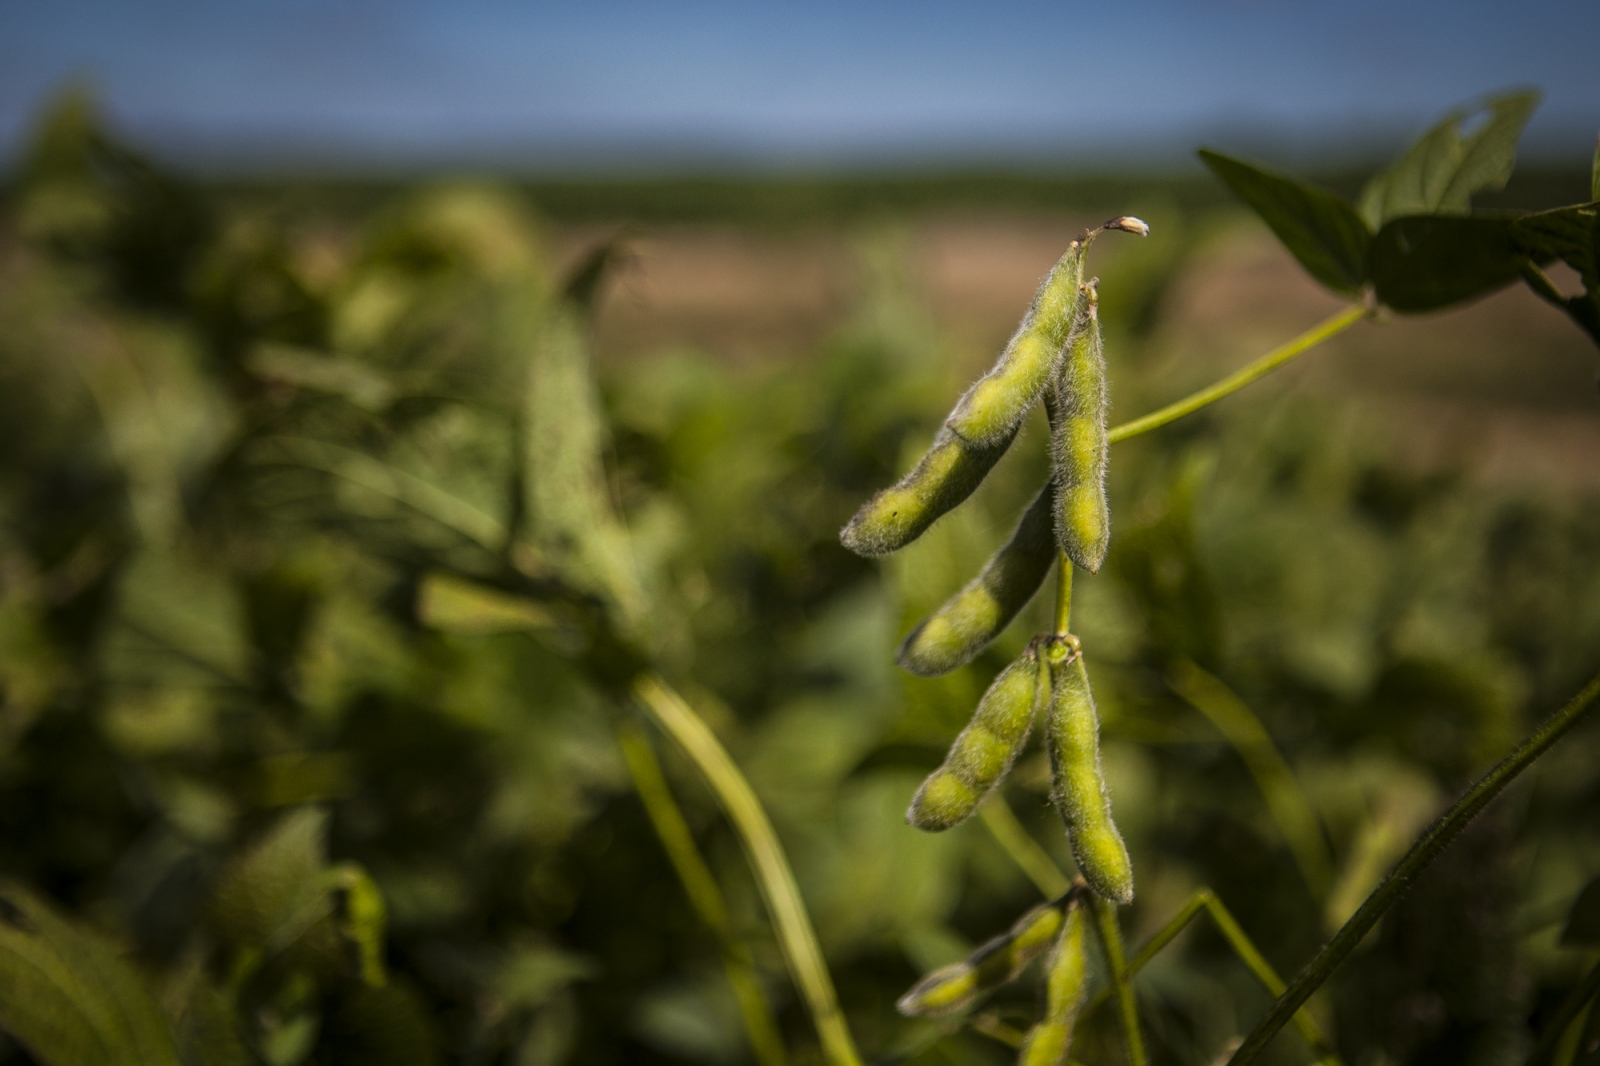 Soybeans on a field in Monte Maiz. The soybean is the part of the plant used in many different aliments for human consumption, to feed animals and even to produce bio-fuel, but it also has having a huge impact on the environment and public health of the communities where it is grown.